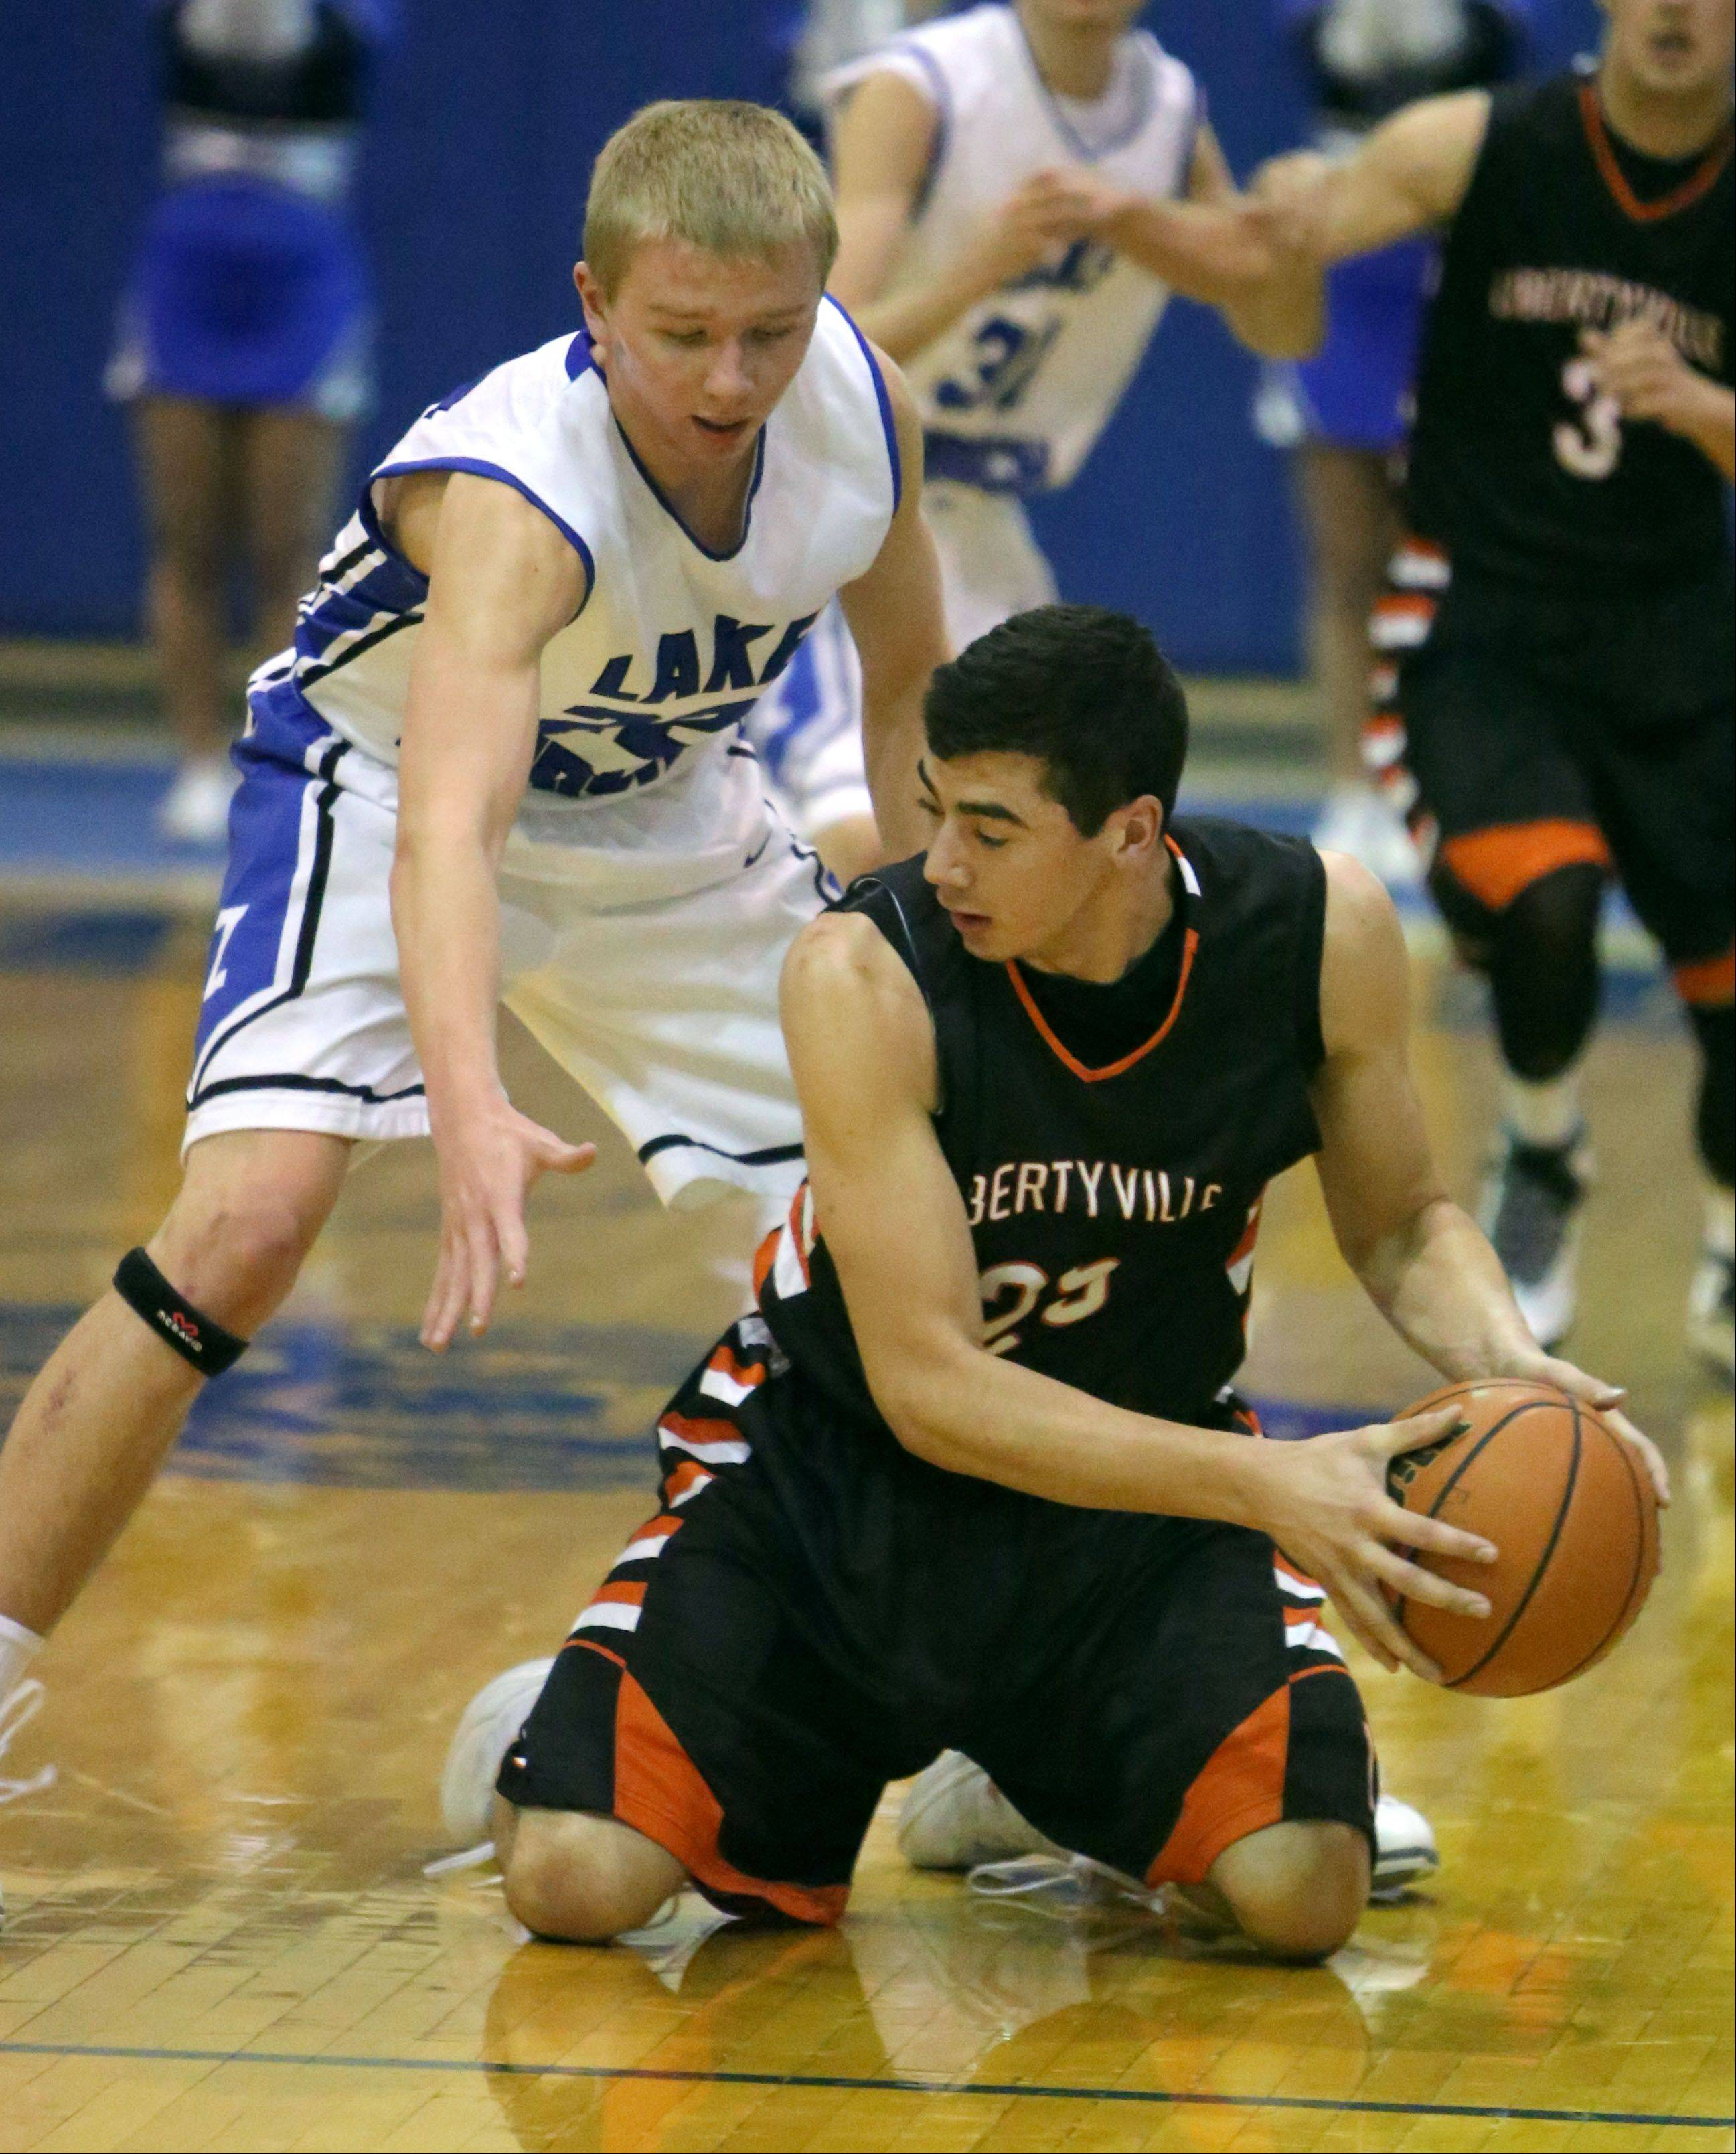 Lake Zurich's Brad Kruse, left, and Libertyville's Johnny Vernasco battle for a loose ball.